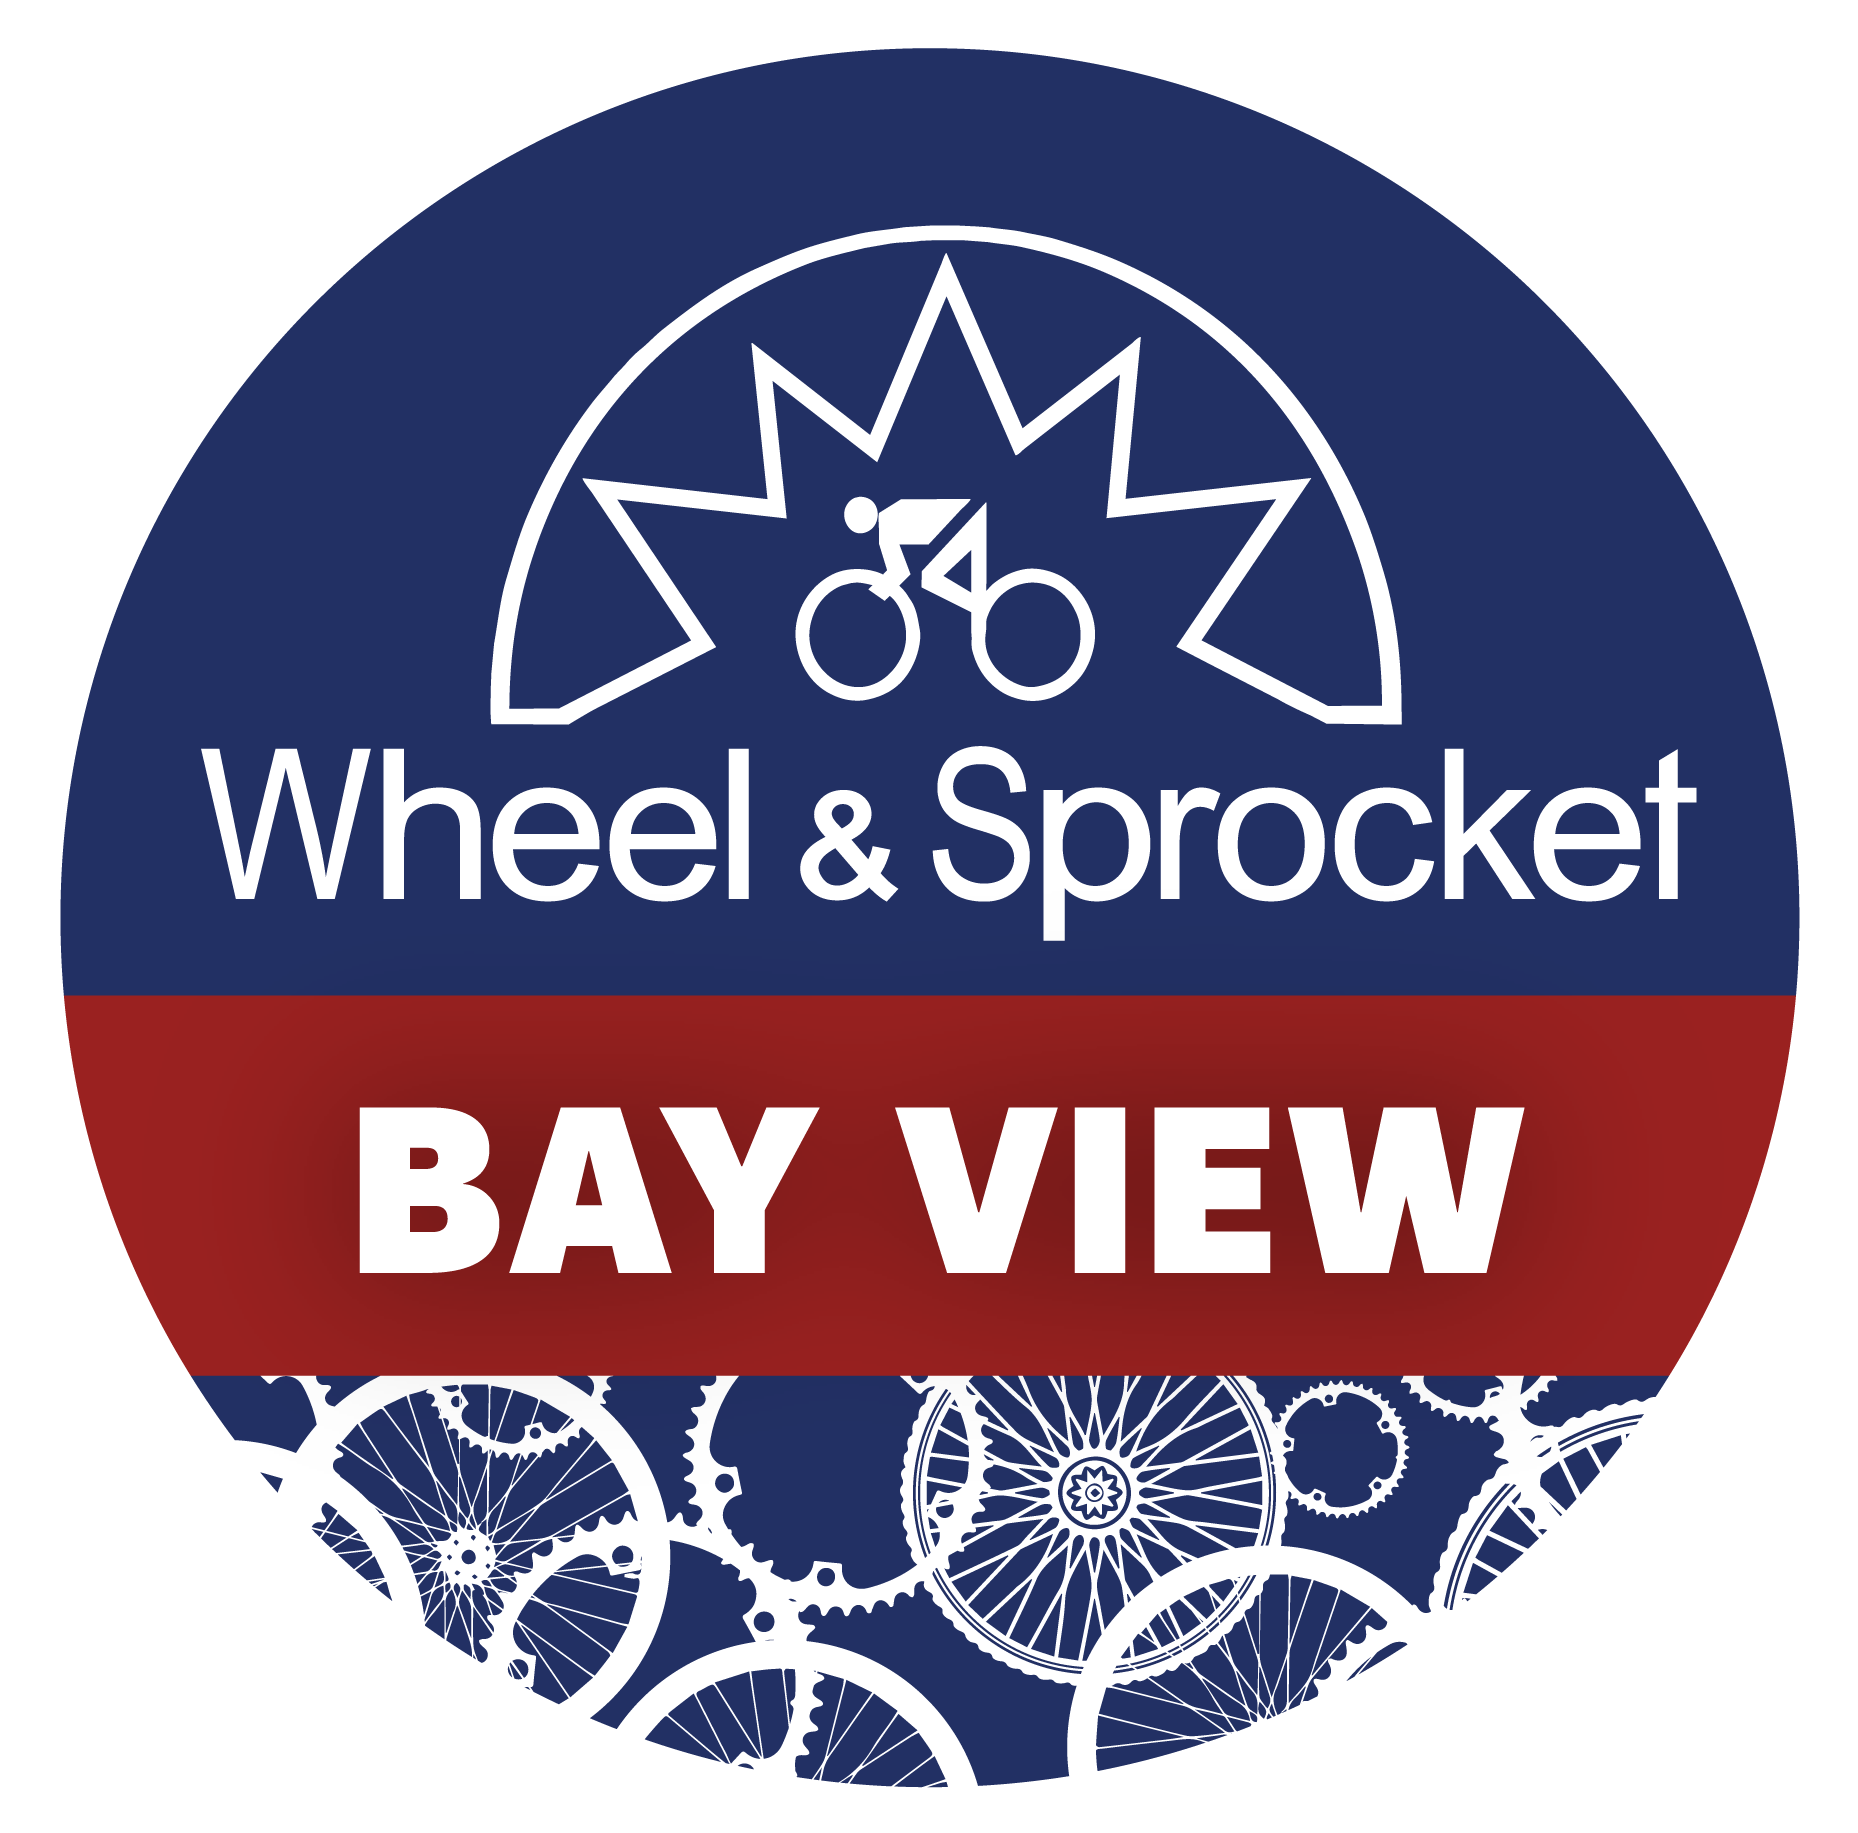 Wheel and Sprocket - Bay View